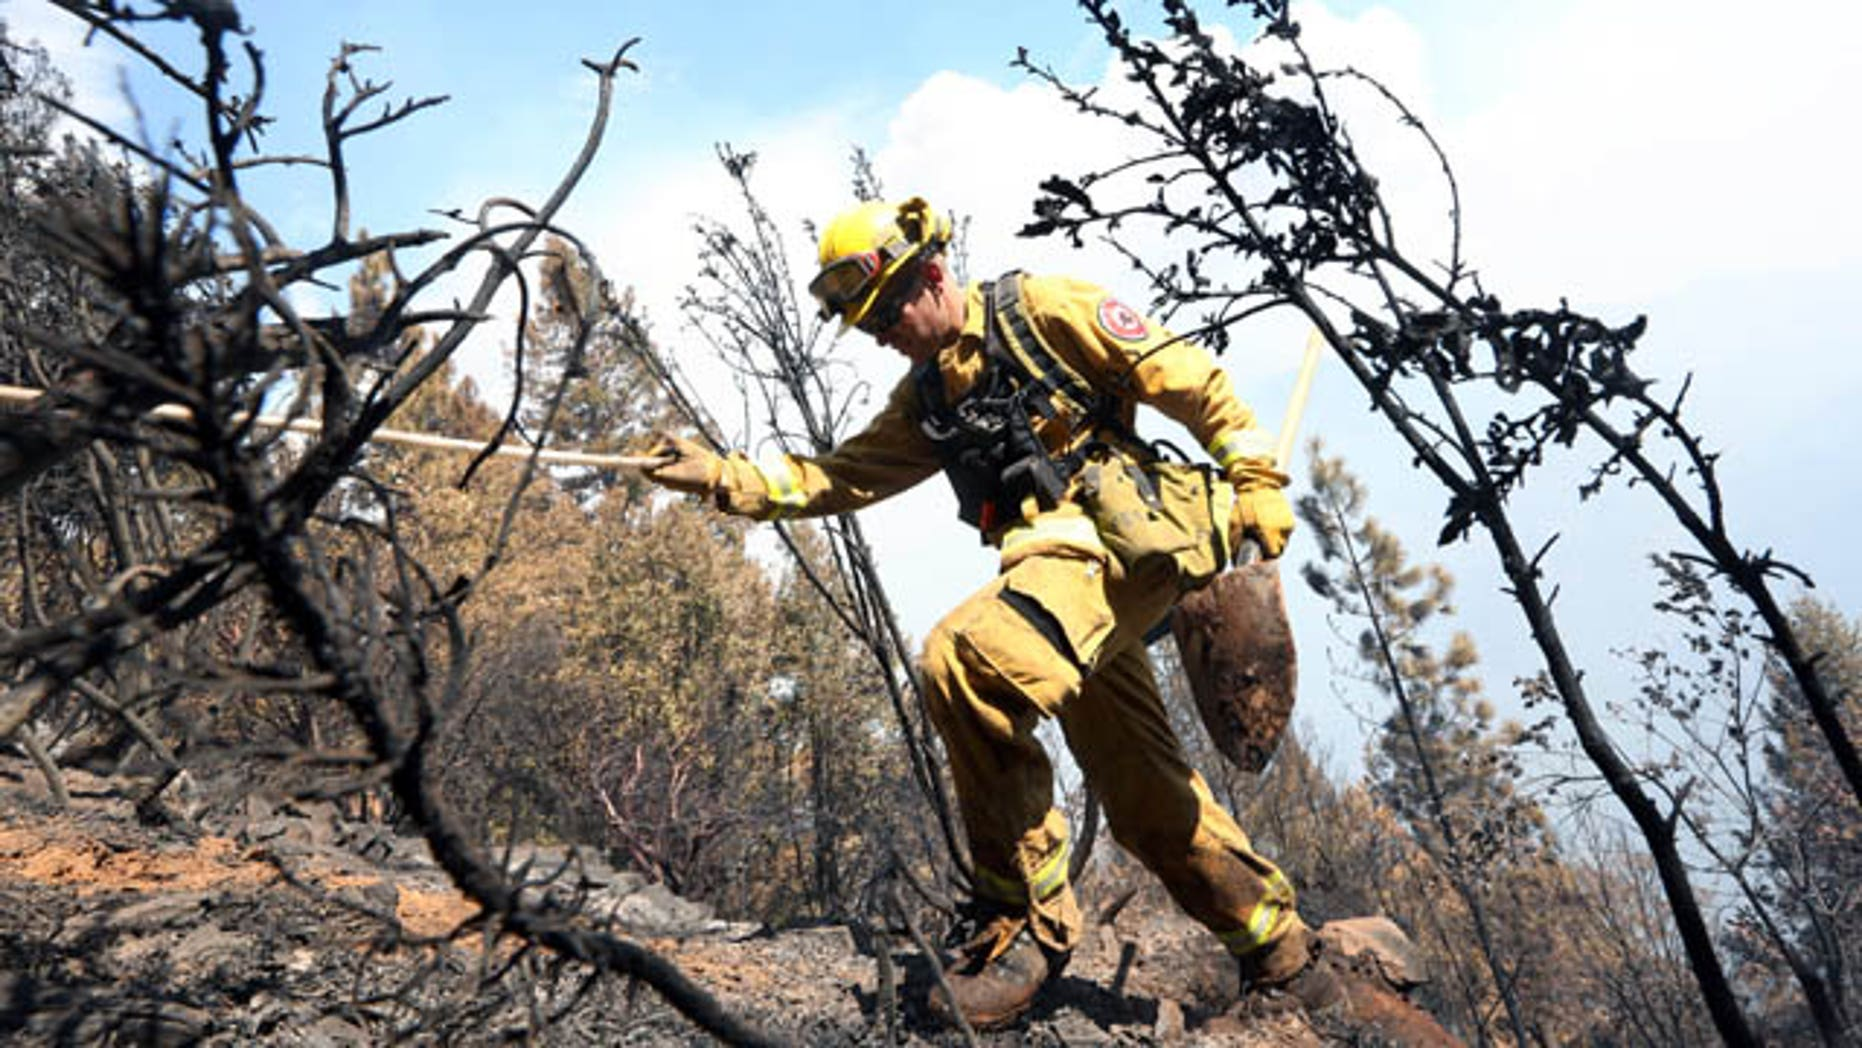 September 15, 2014: Firefighter Jesse Hadorowski climbs up steep terrain while battling a fire near Pollack Pines, Calif. The fire, which started Sunday, has consumed more than 3,000 acres and forced the evacuation of dozens of homes.(AP Photo/Rich Pedroncelli)